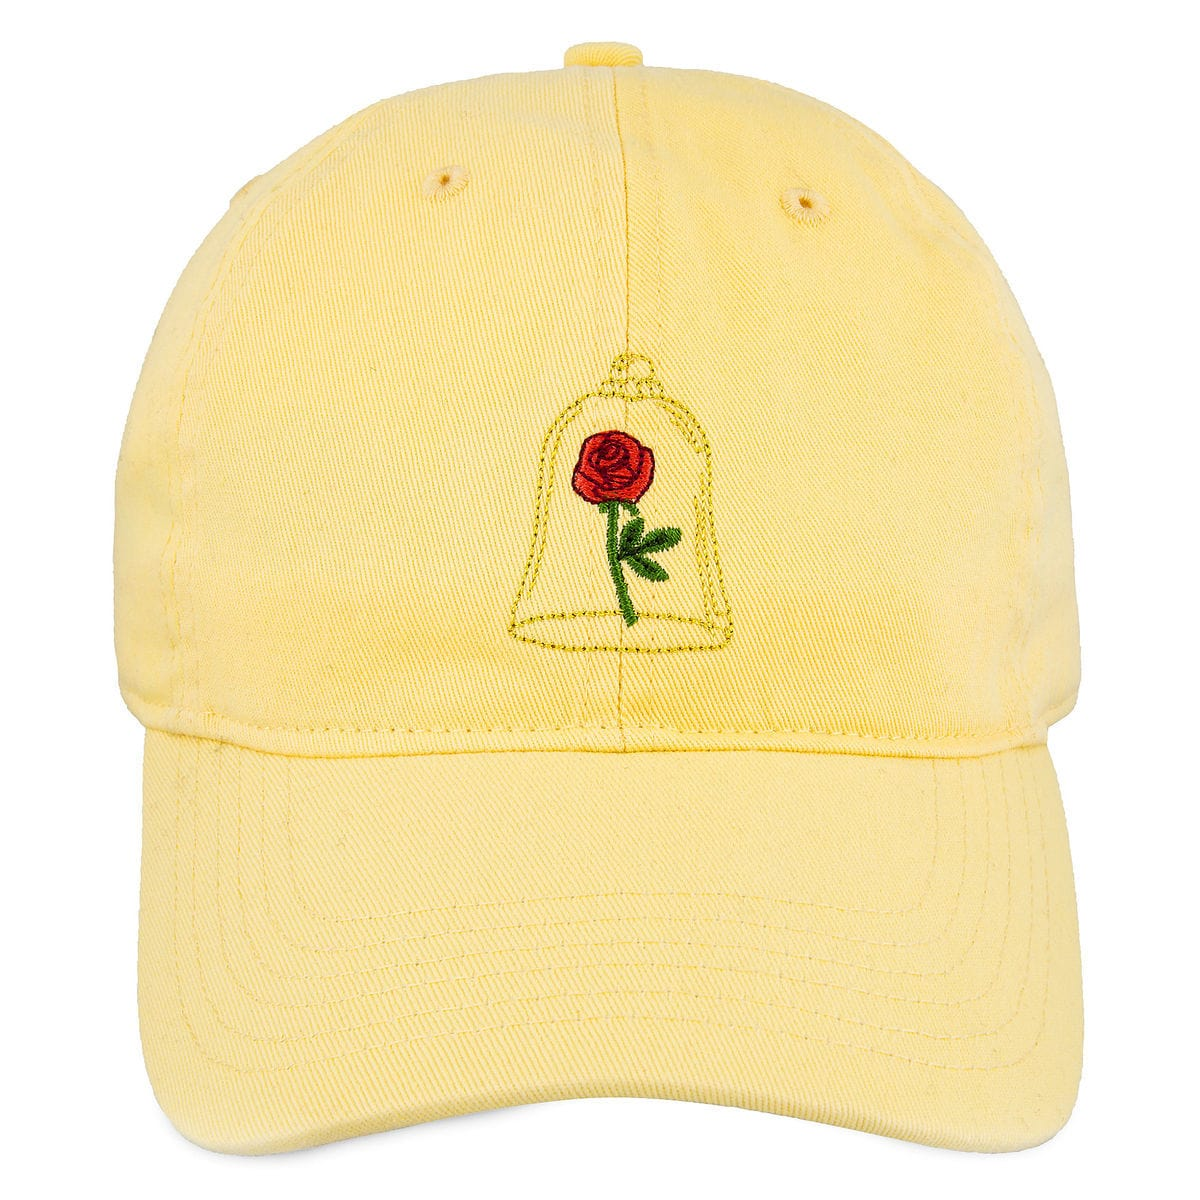 Product Image of Beauty and the Beast Enchanted Rose Baseball Cap for  Adults   1 193bca4a77f